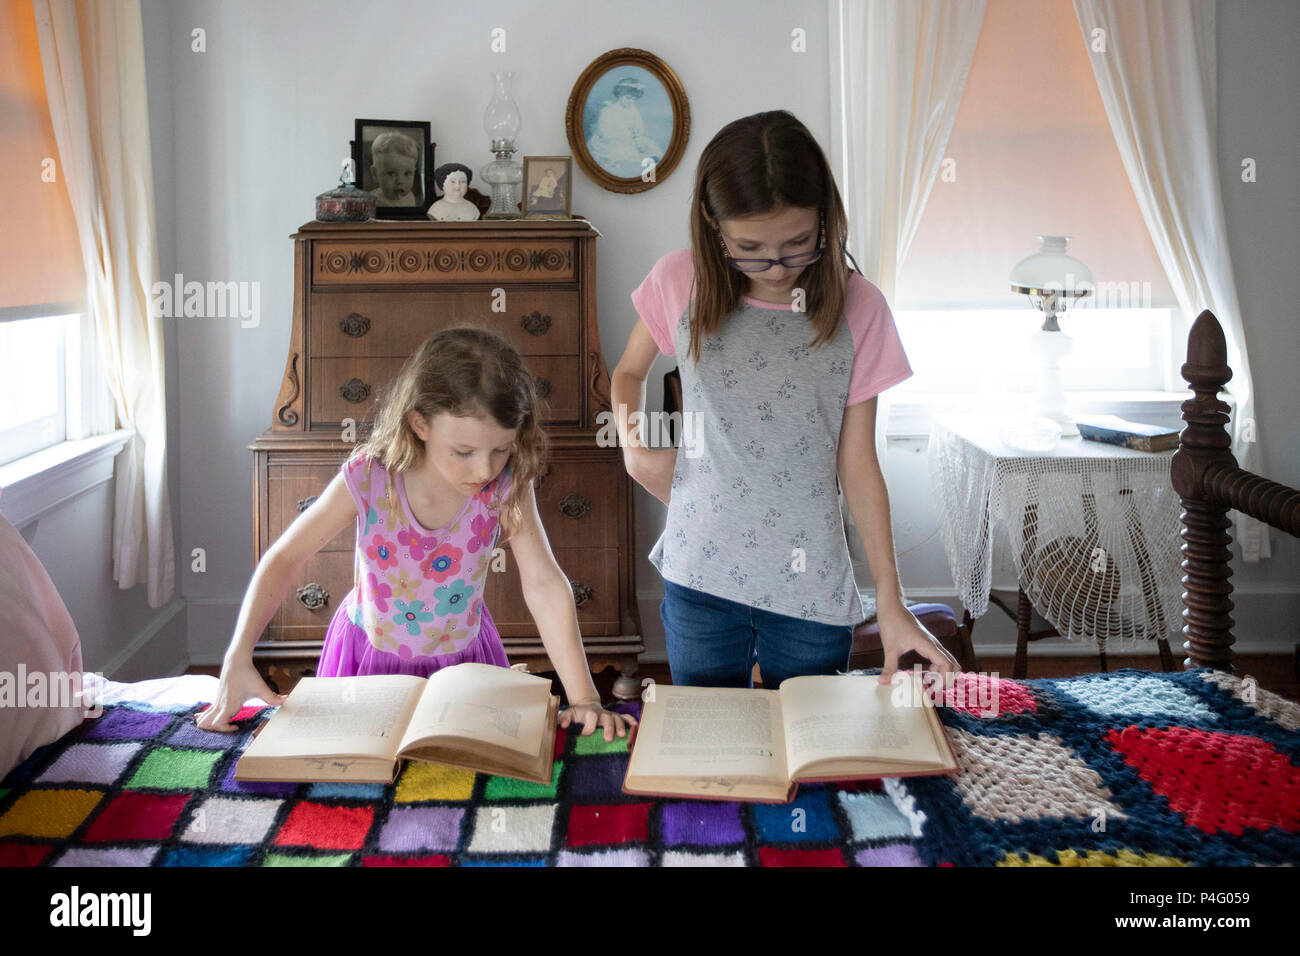 West Palm Beach, Florida, USA. 21st June, 2018. Summer Hodges, 6, and her sister Coral Hodges, 12, Lake Worth, look at old books at the Riddle House in Yesteryear Village at the South Florida Fairgrounds in West Palm Beach, Florida on June 21, 2018. The house was built in West Palm Beach, Florida in 1905 by some of Henry Flagler's hotel construction workers. It was moved to Yesteryear Village in 1995. Credit: Allen Eyestone/The Palm Beach Post/ZUMA Wire/Alamy Live News - Stock Image